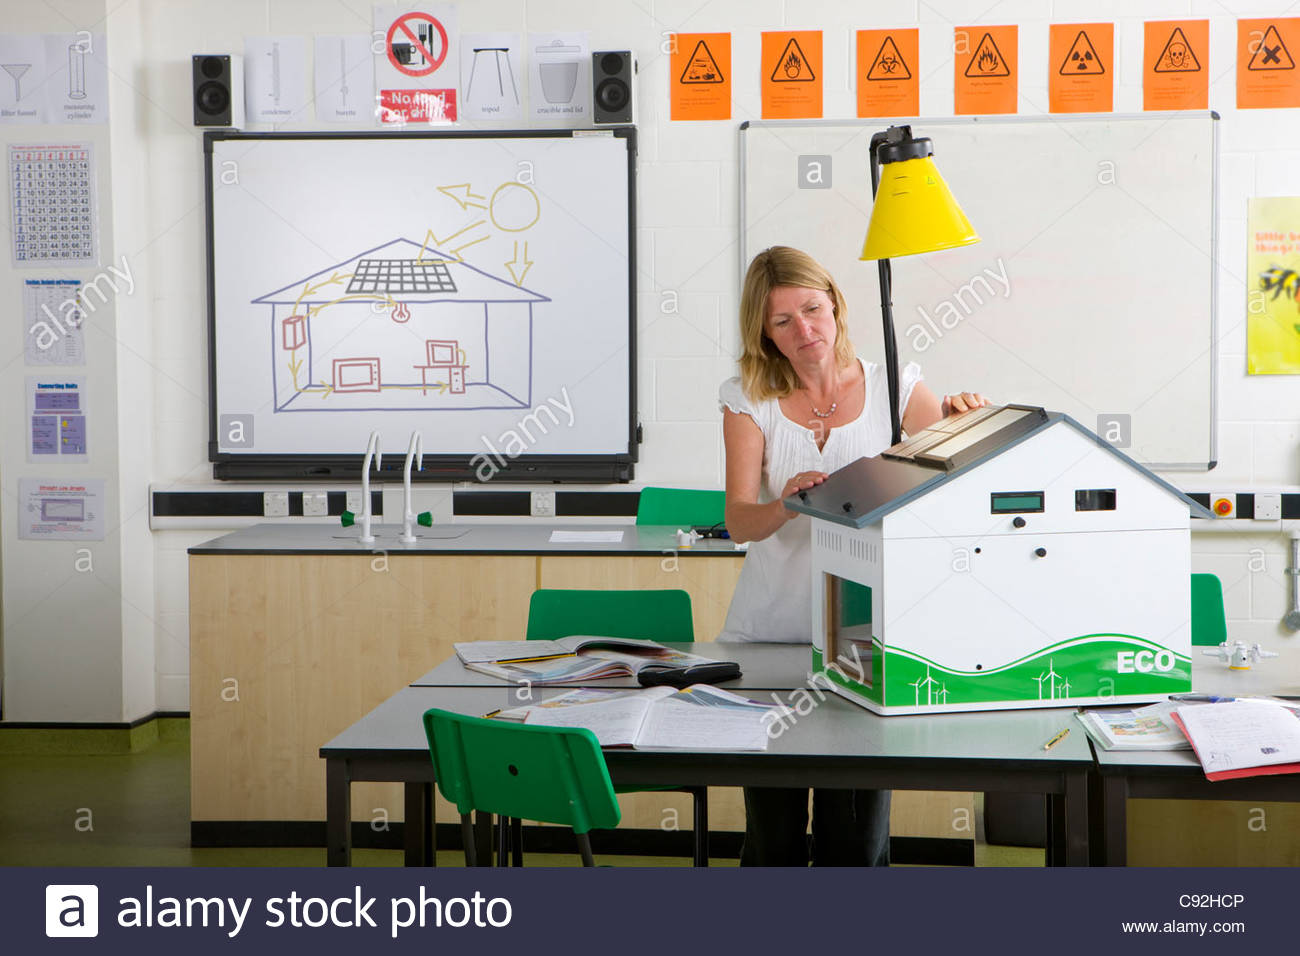 Female teacher adjusting solar panels on house model in science class - Stock Image